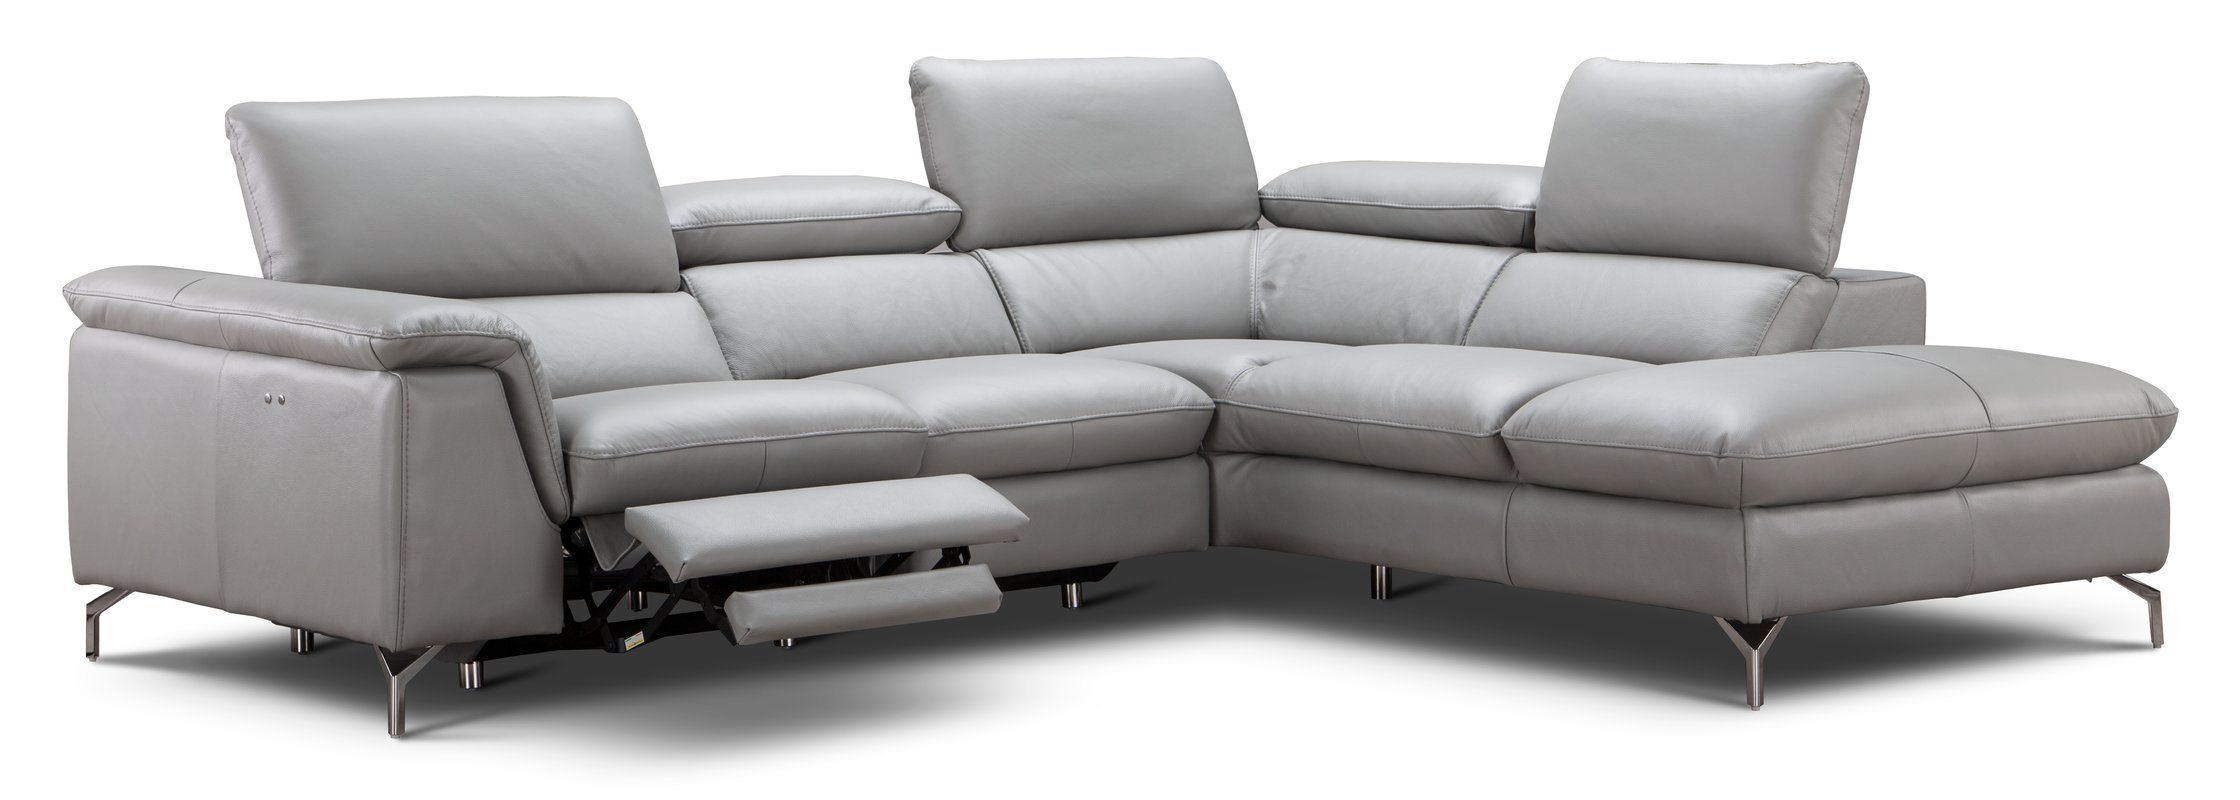 Dupont Leather Reclining Sectional | Sit Your A** Down :) in ...